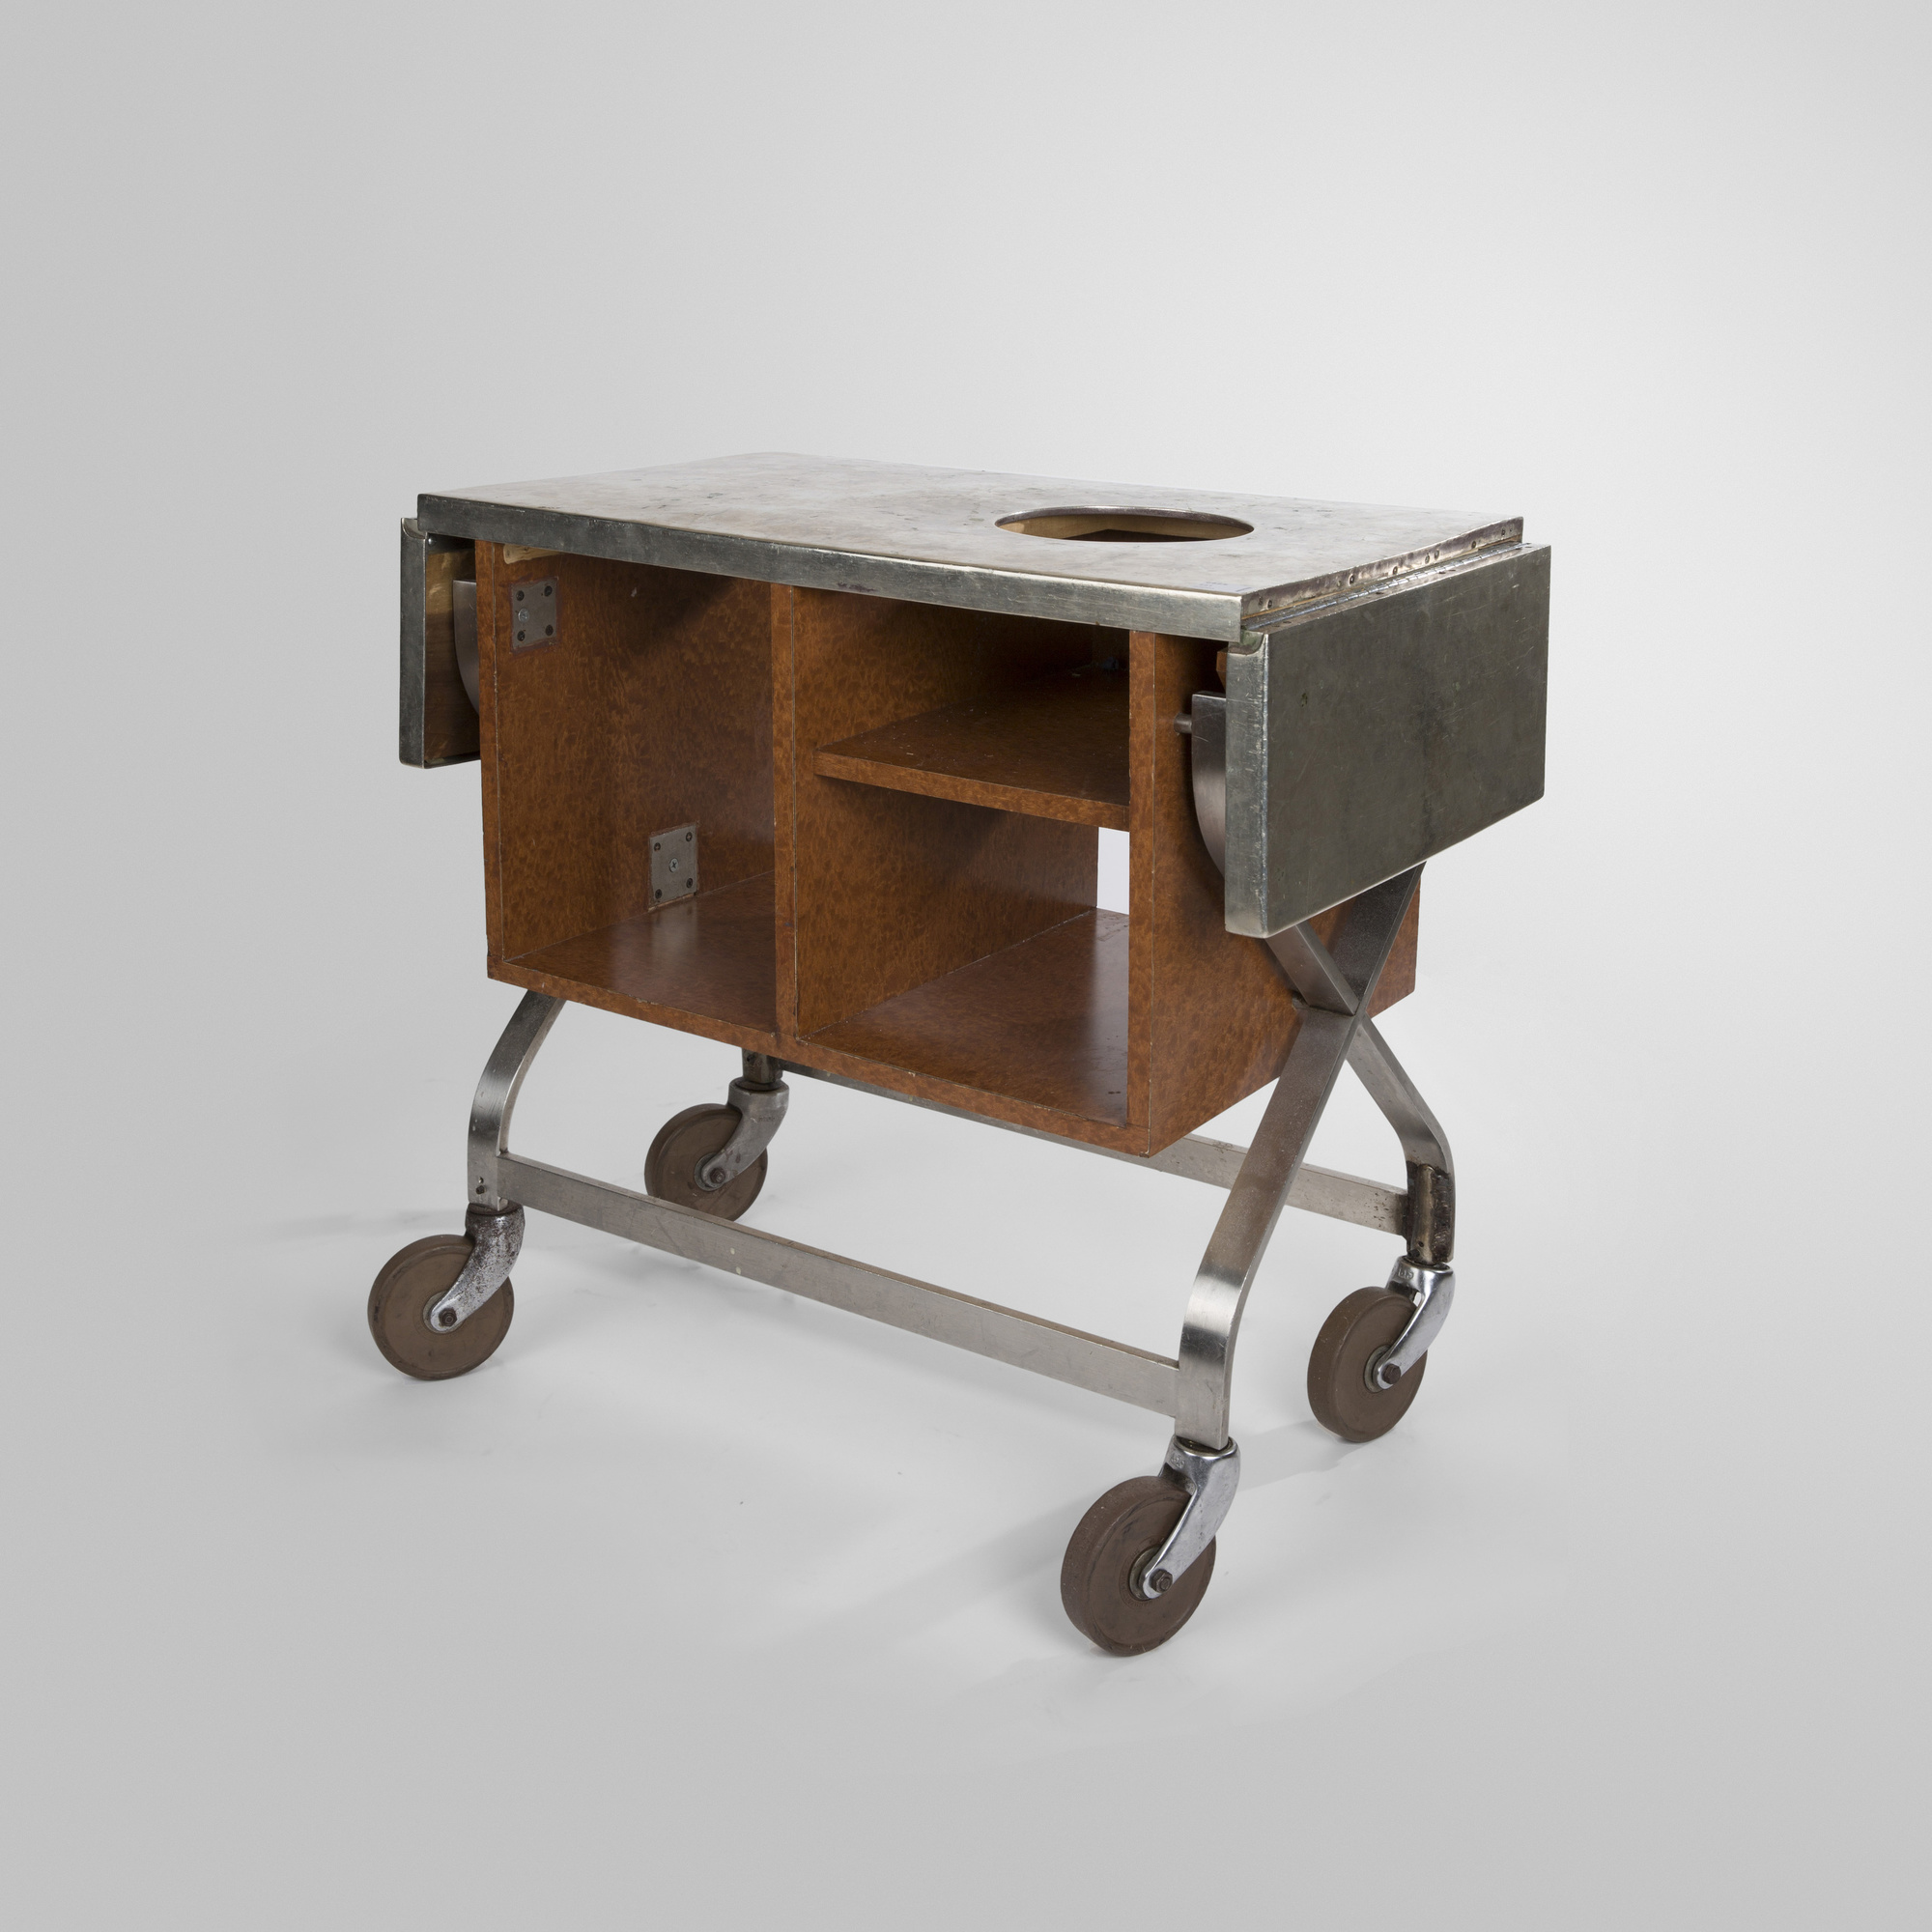 561: Garth and Ada Louise Huxtable / Serving cart from The Four Seasons (1 of 1)